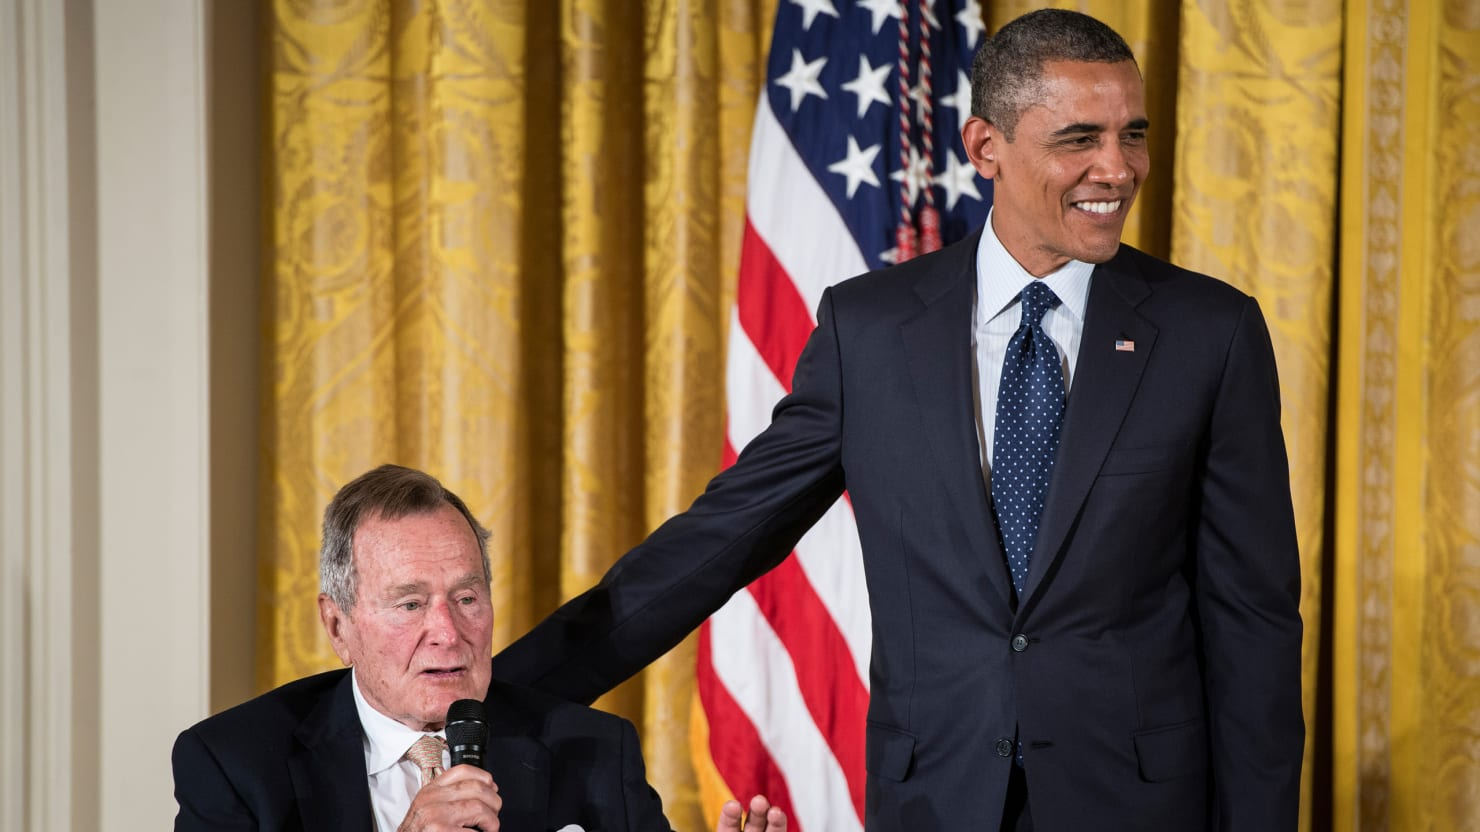 George H.W. Bush, Our Preppiest Ex-President, Honored at White House